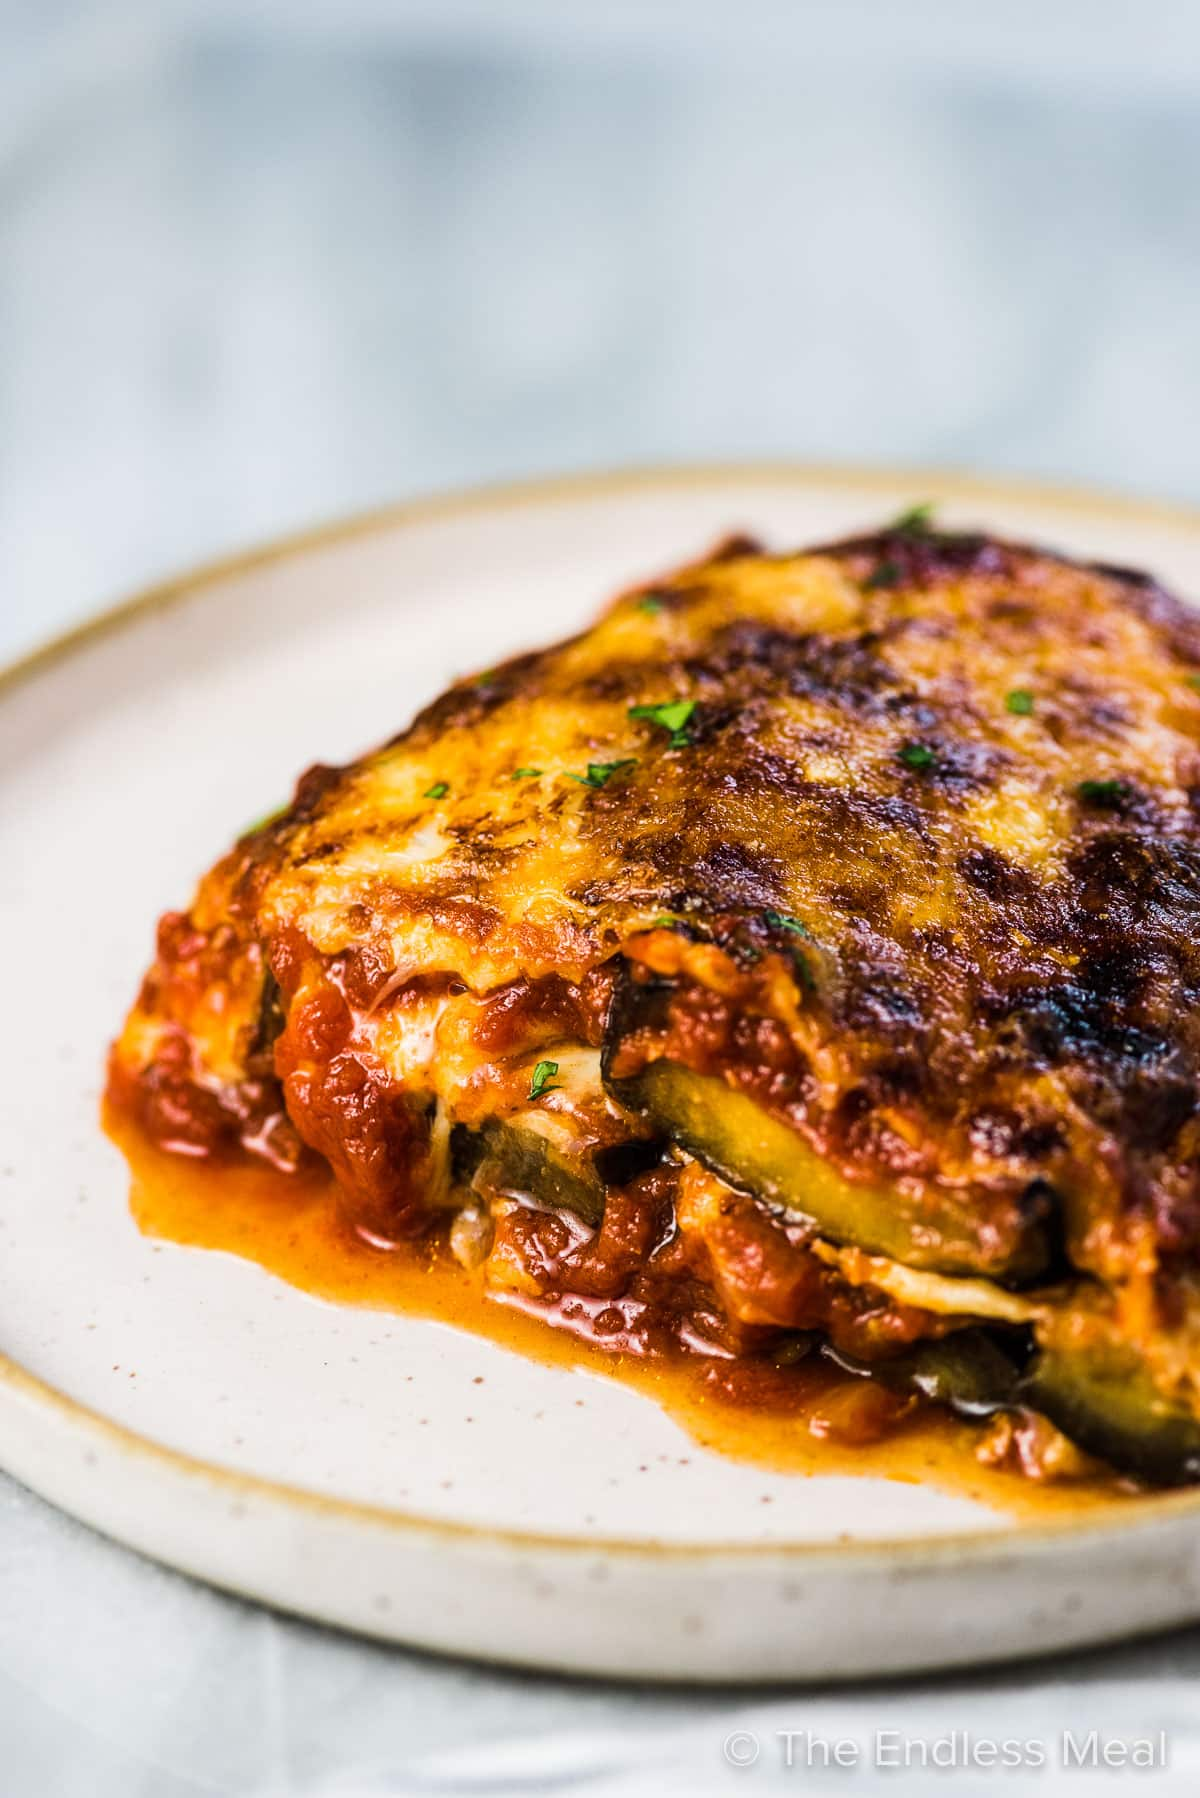 Side view of the layers of eggplant parmesan.